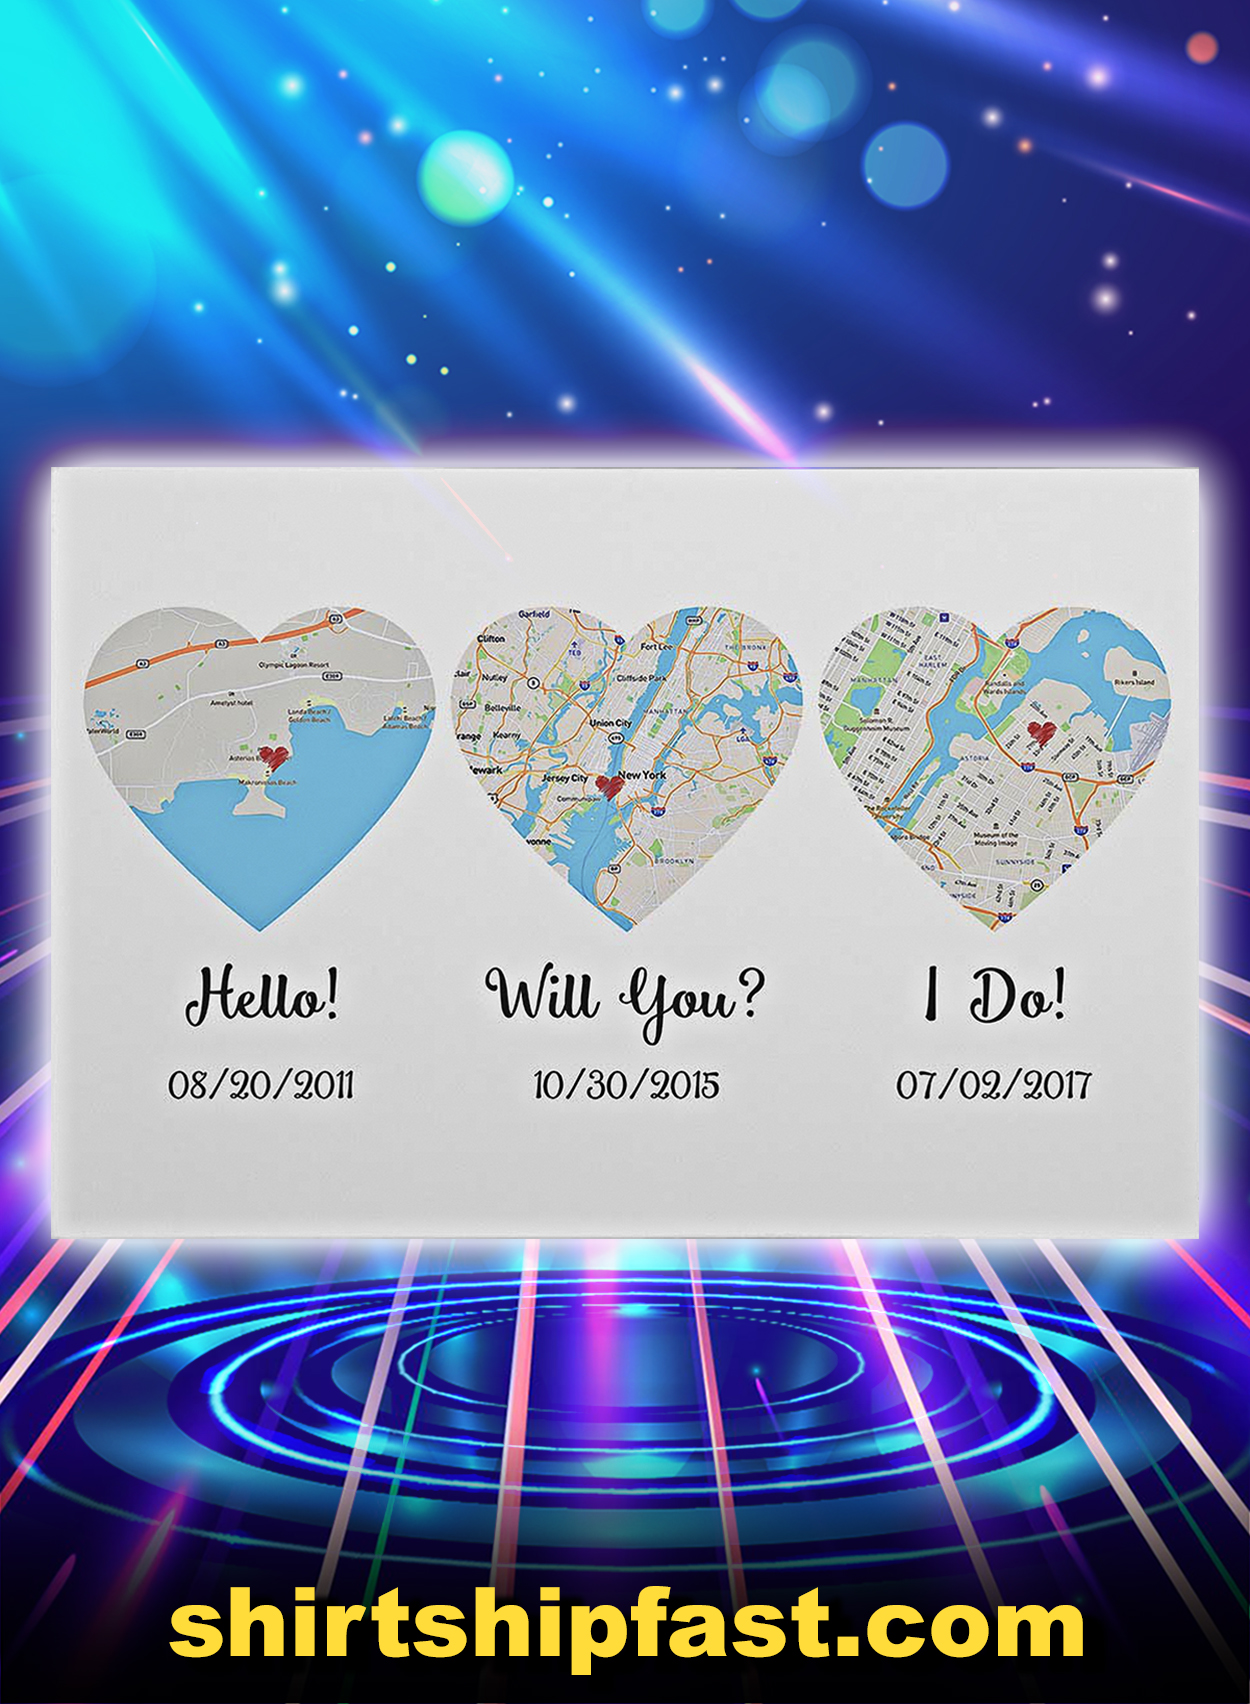 Map hello will you i do poster - A2